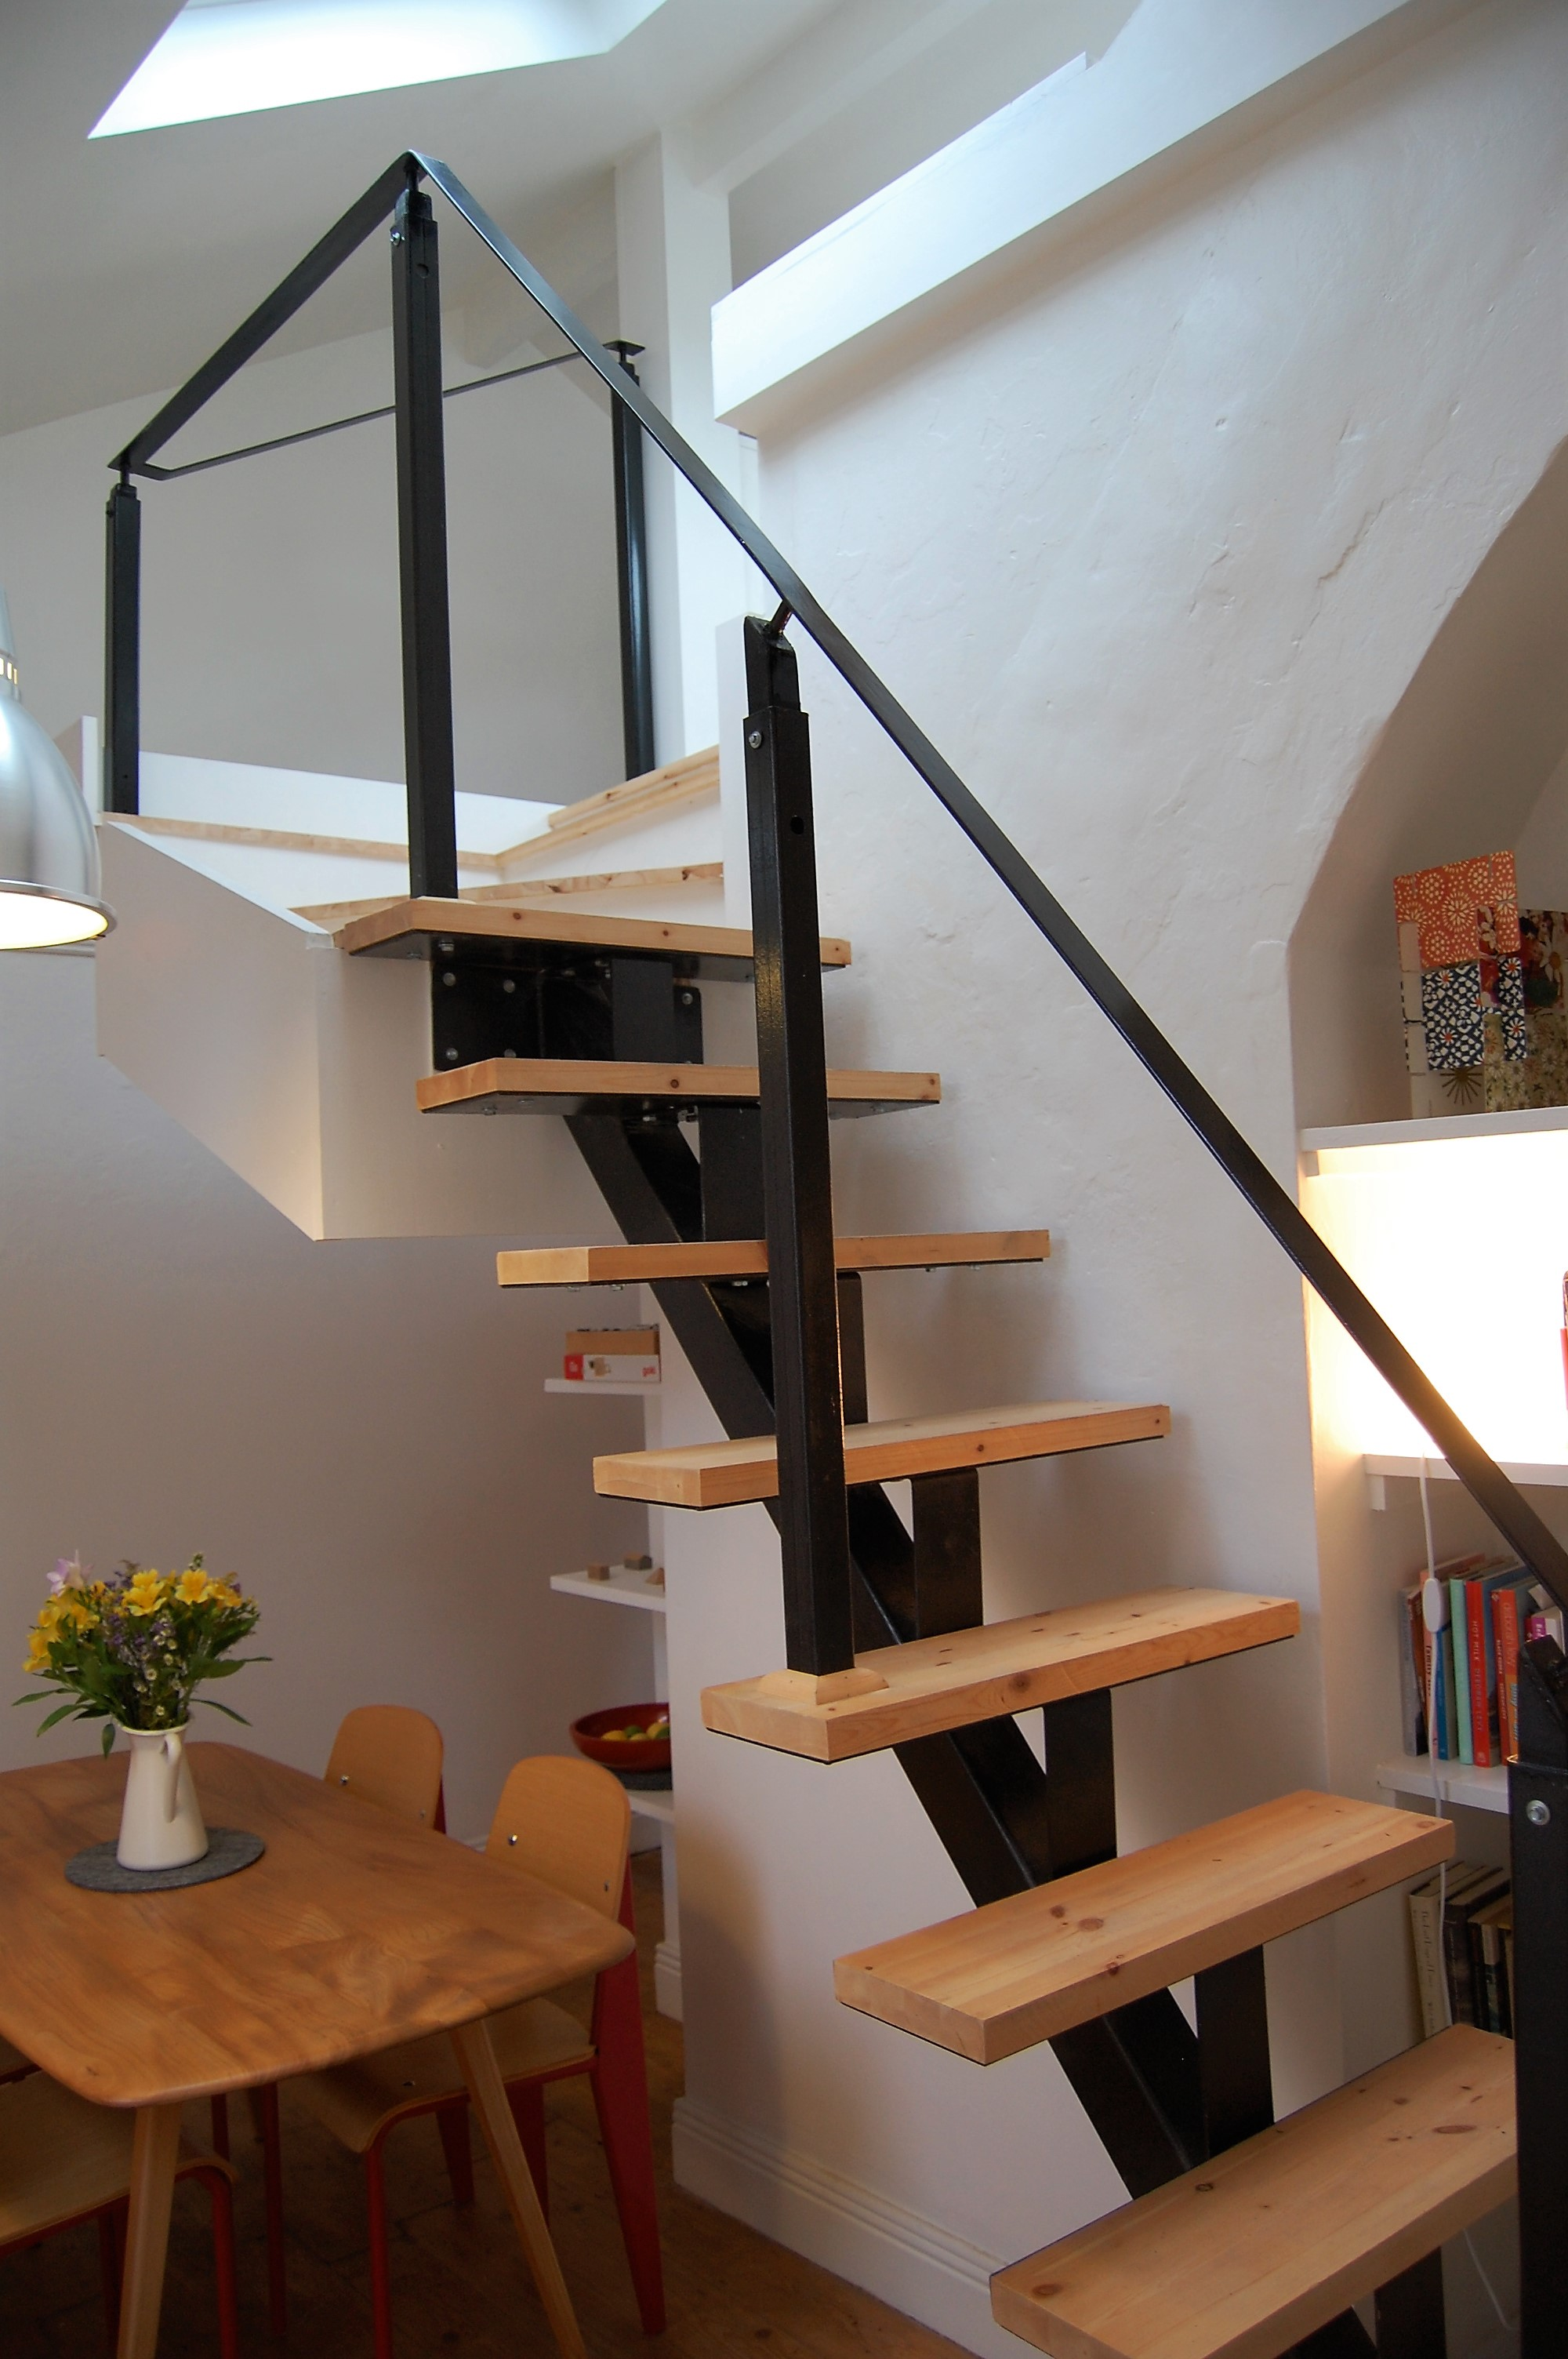 Stairs and Display Wall